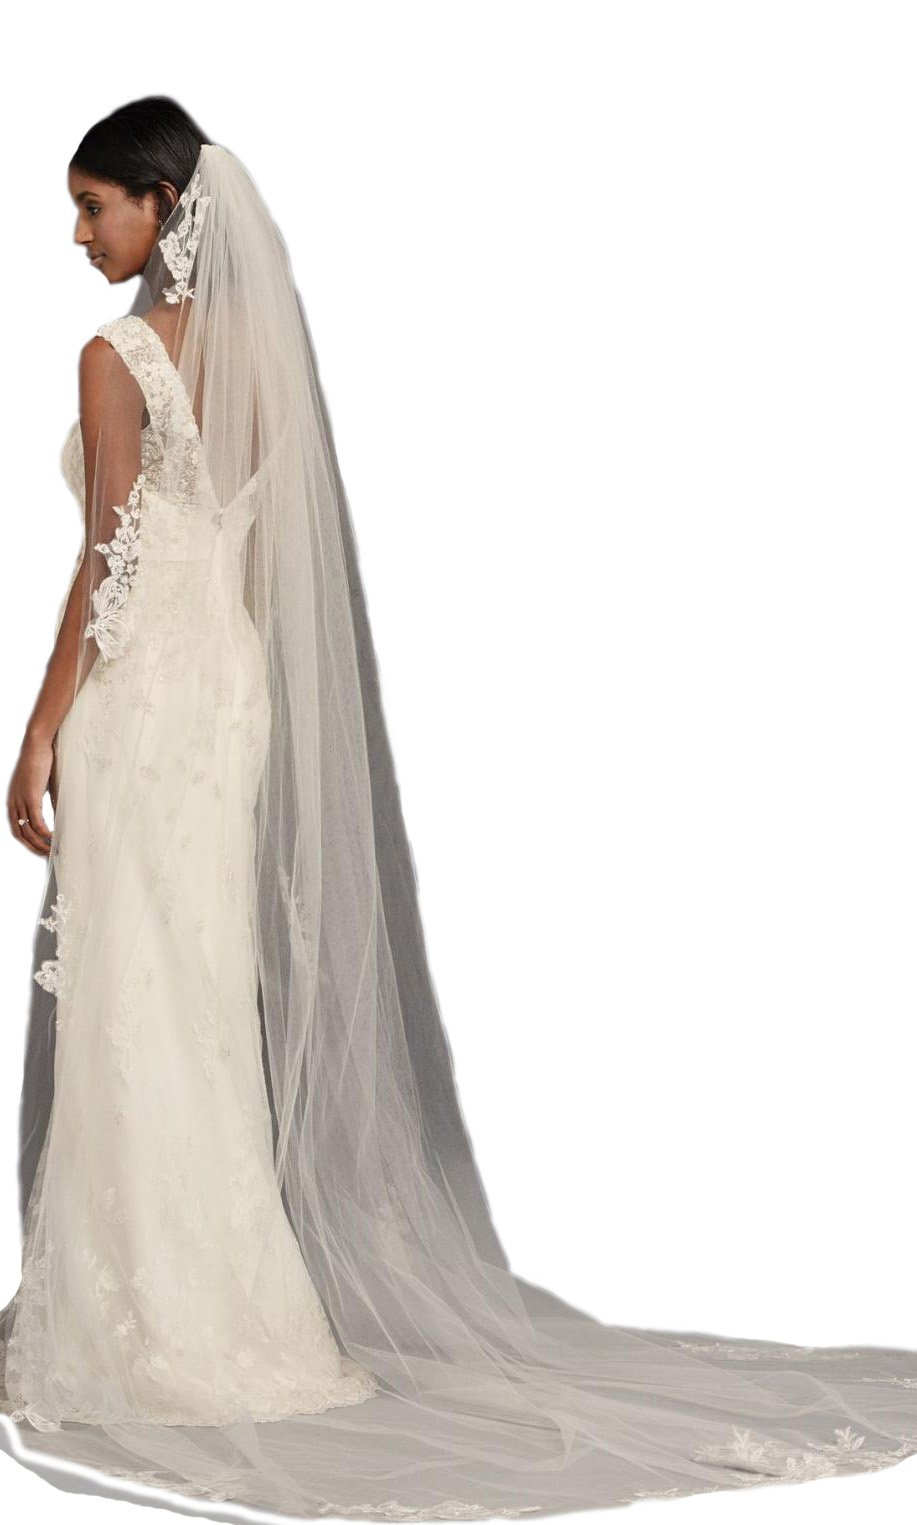 Passat Pale Ivory Single-Tier 3M Cathedral Sequin and Lace French Wedding Veil DB70